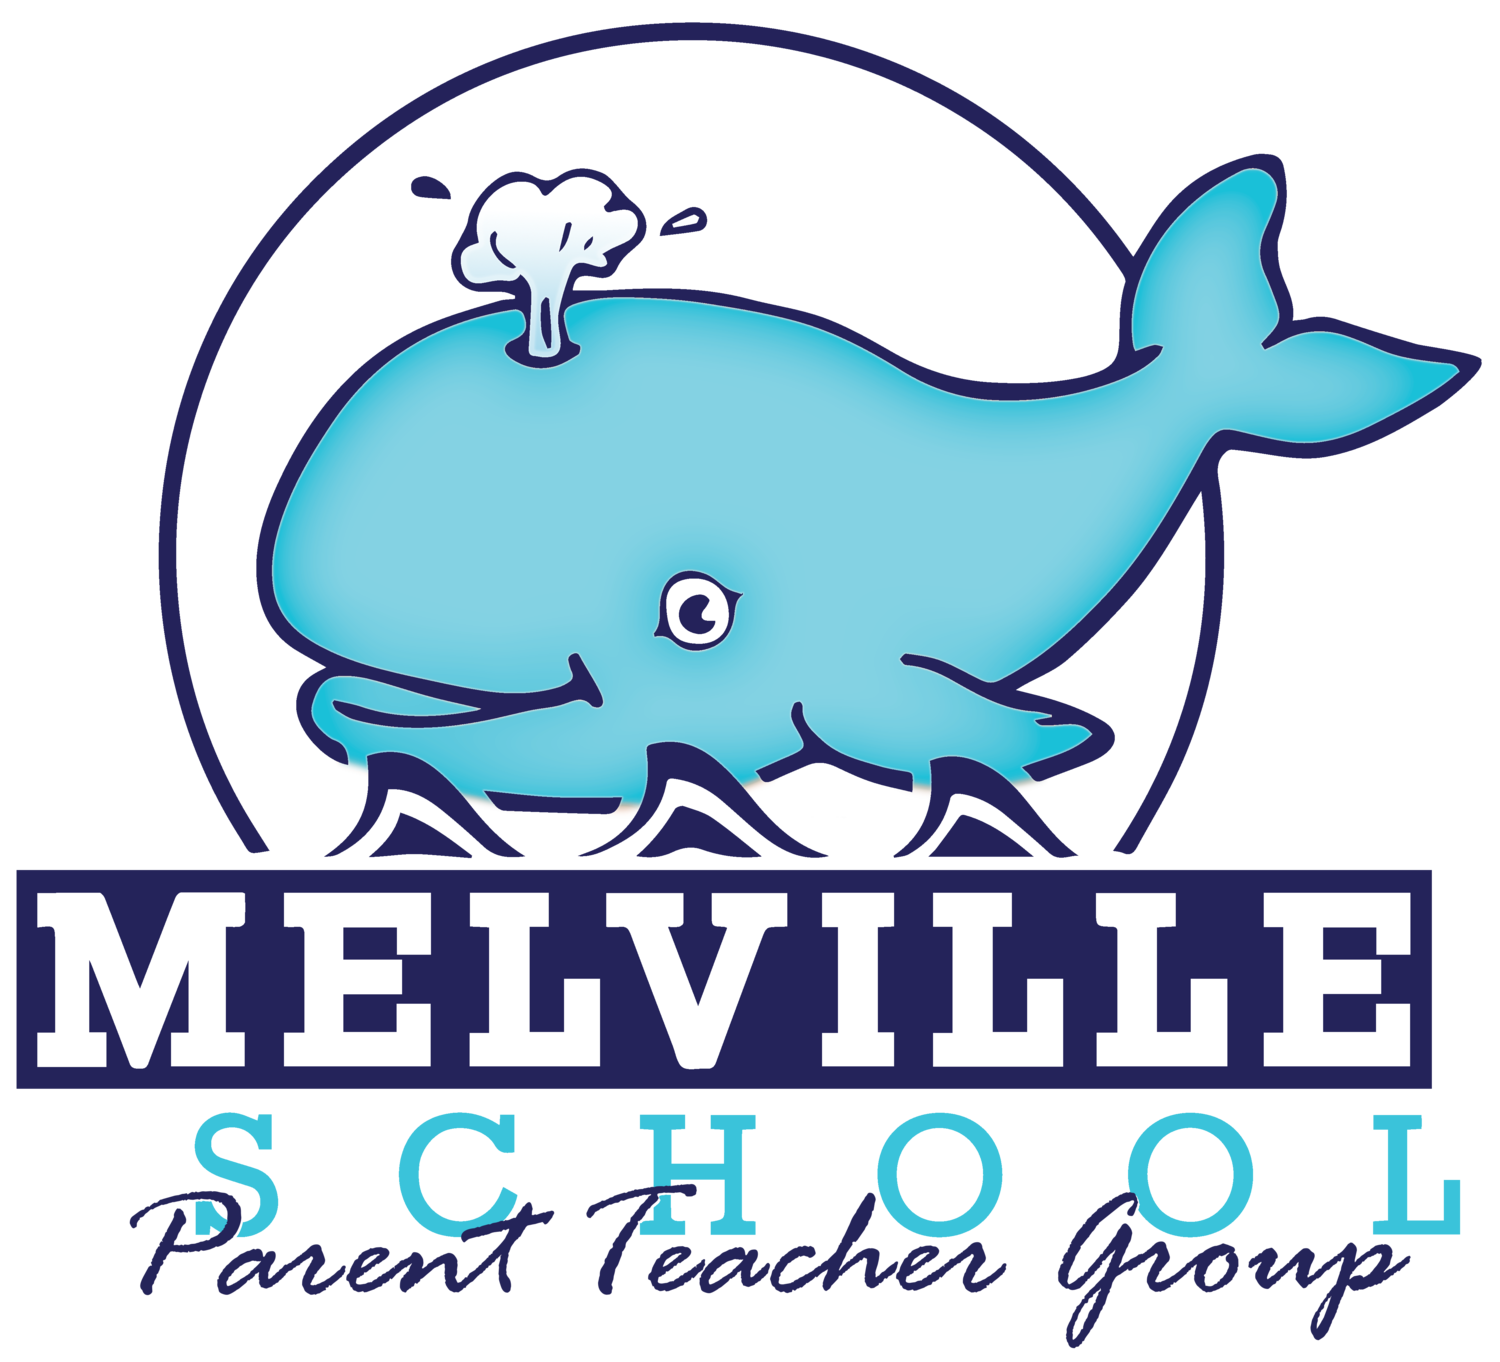 Melville Parent Teacher Group